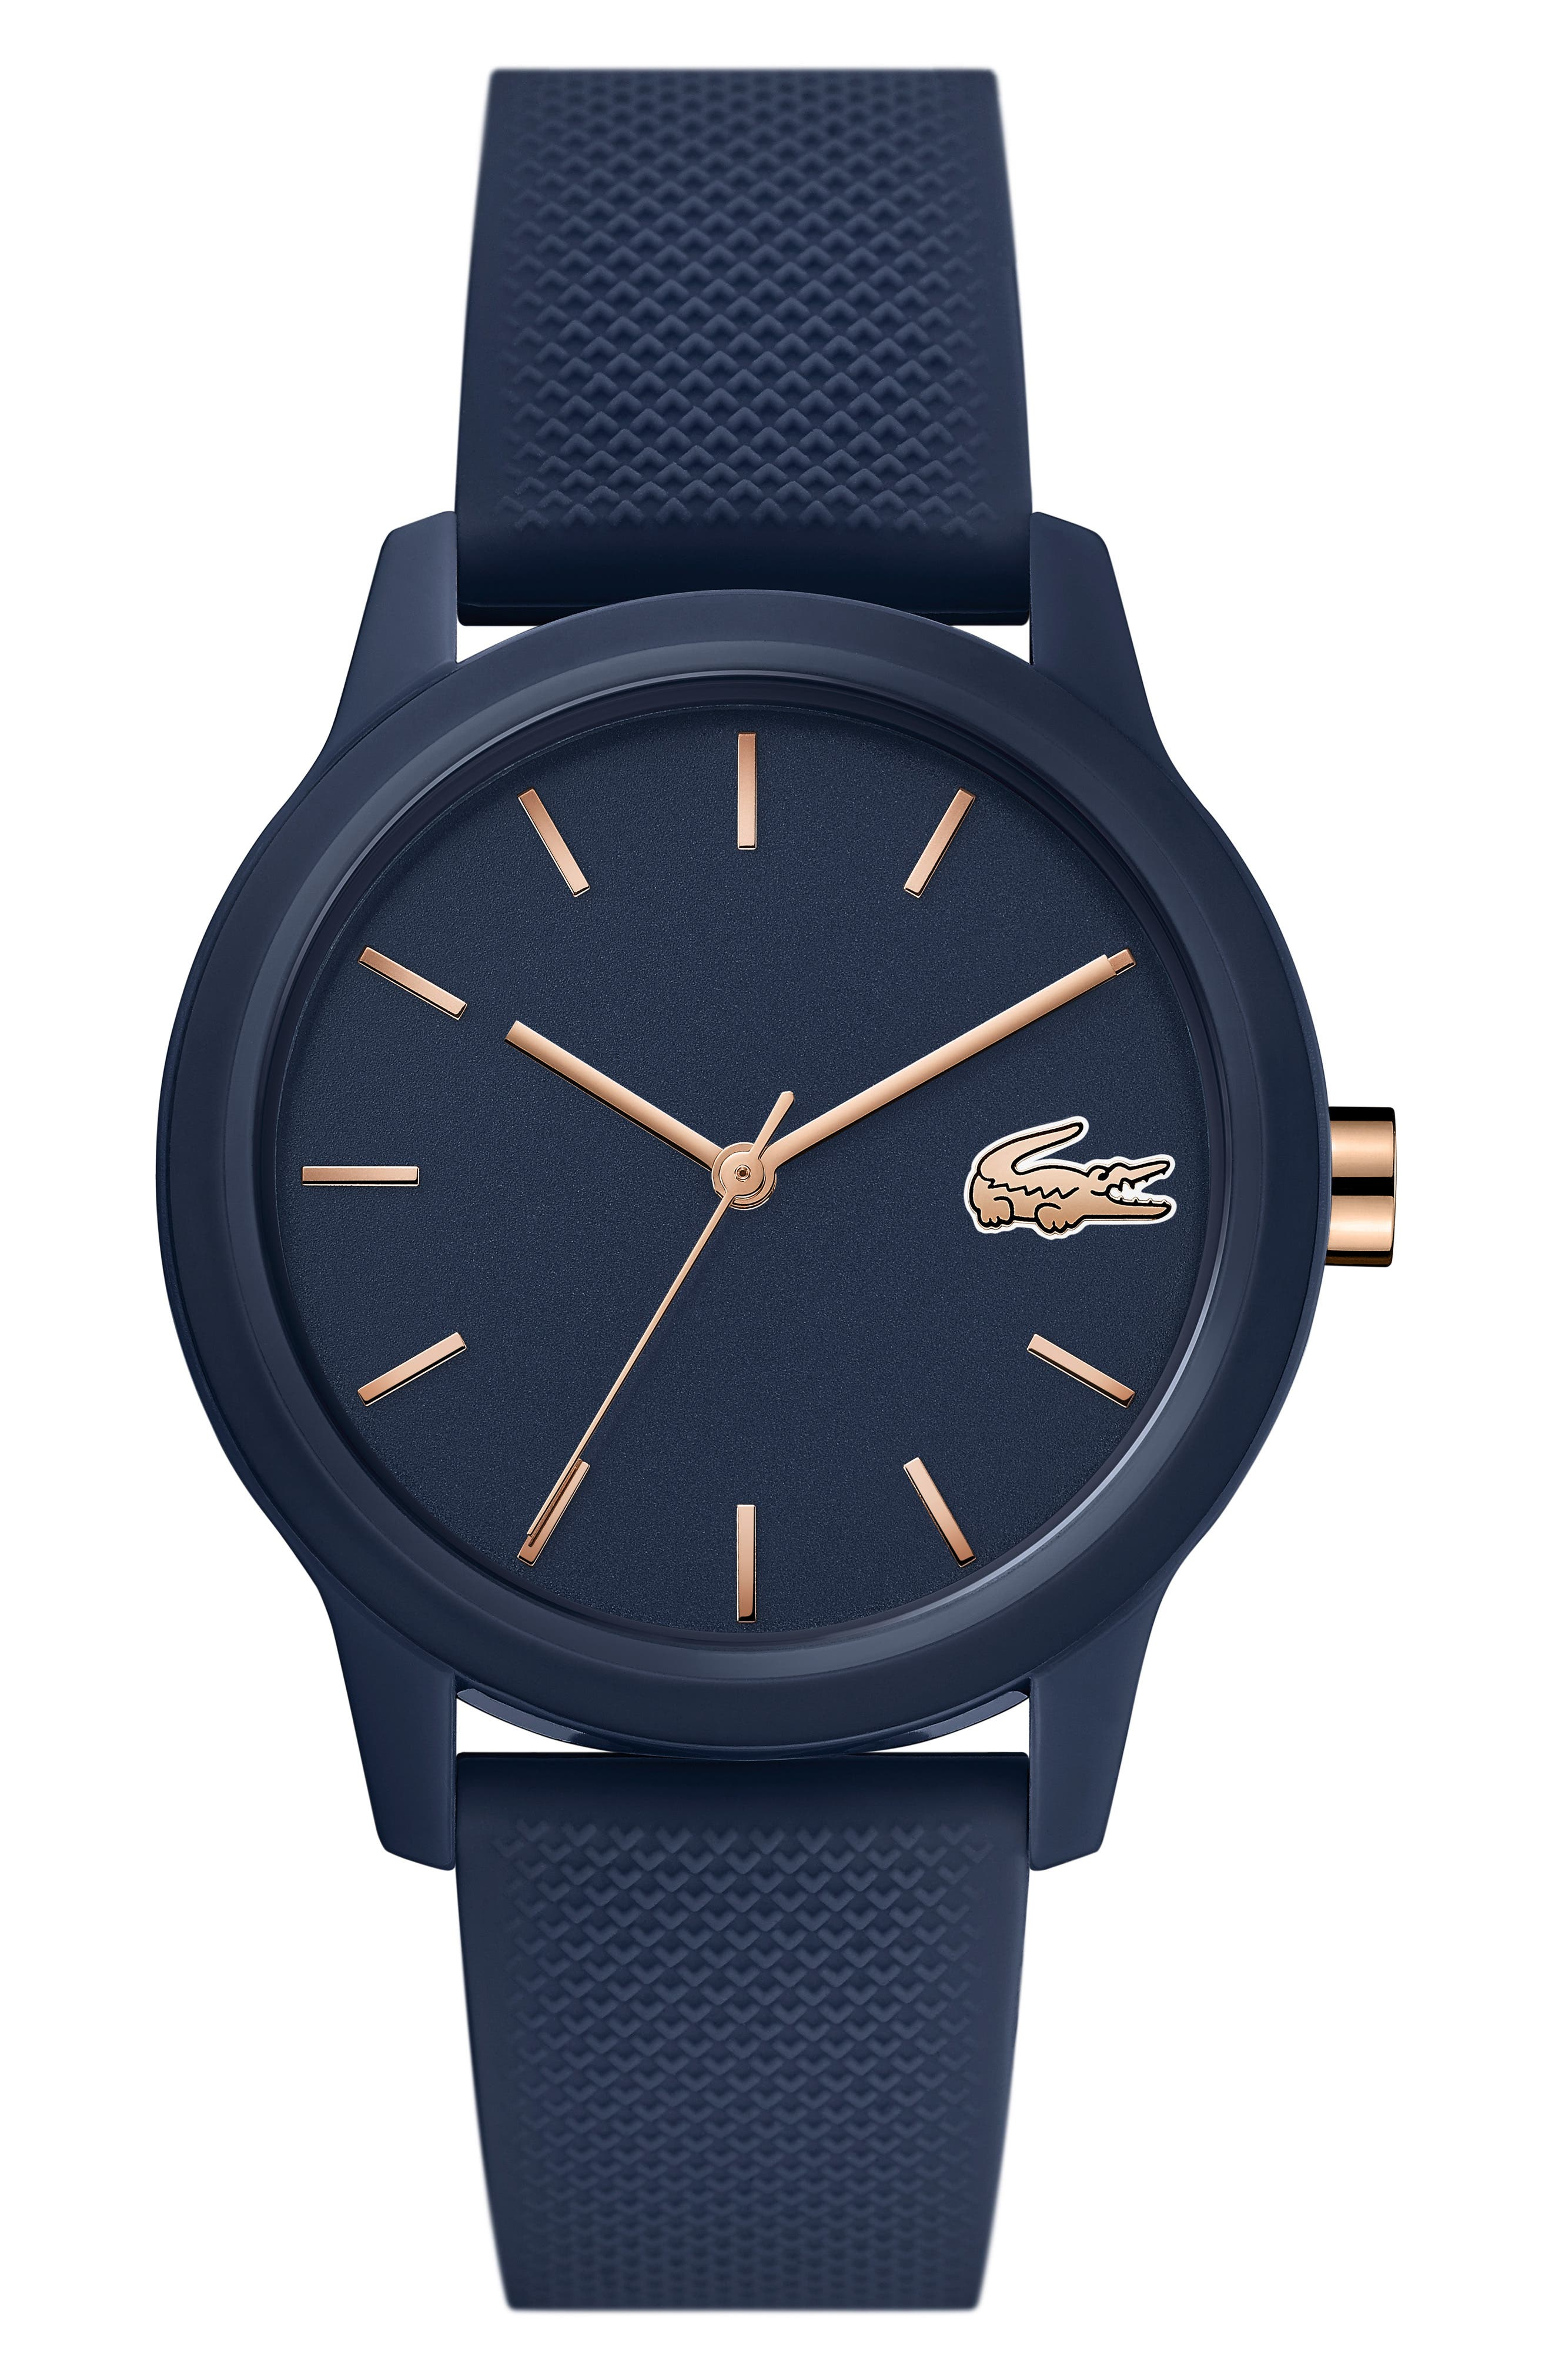 LACOSTE 12.12 Silicone Strap Watch, 36mm, Main, color, BLUE